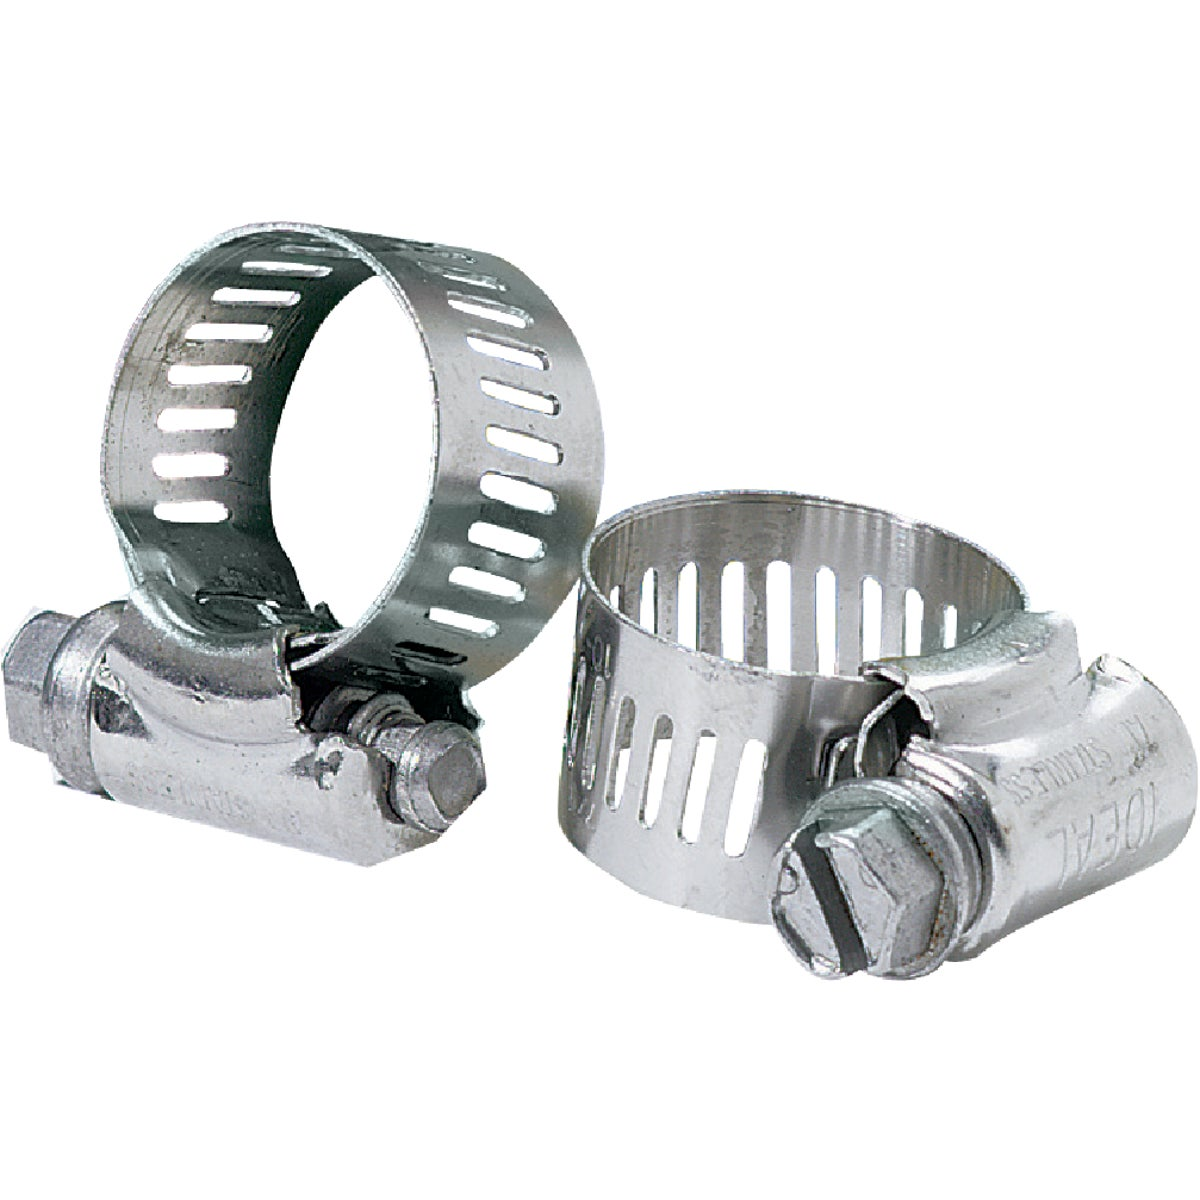 Ideal Corp. 3/4-1-3/4 CLAMP 6720153